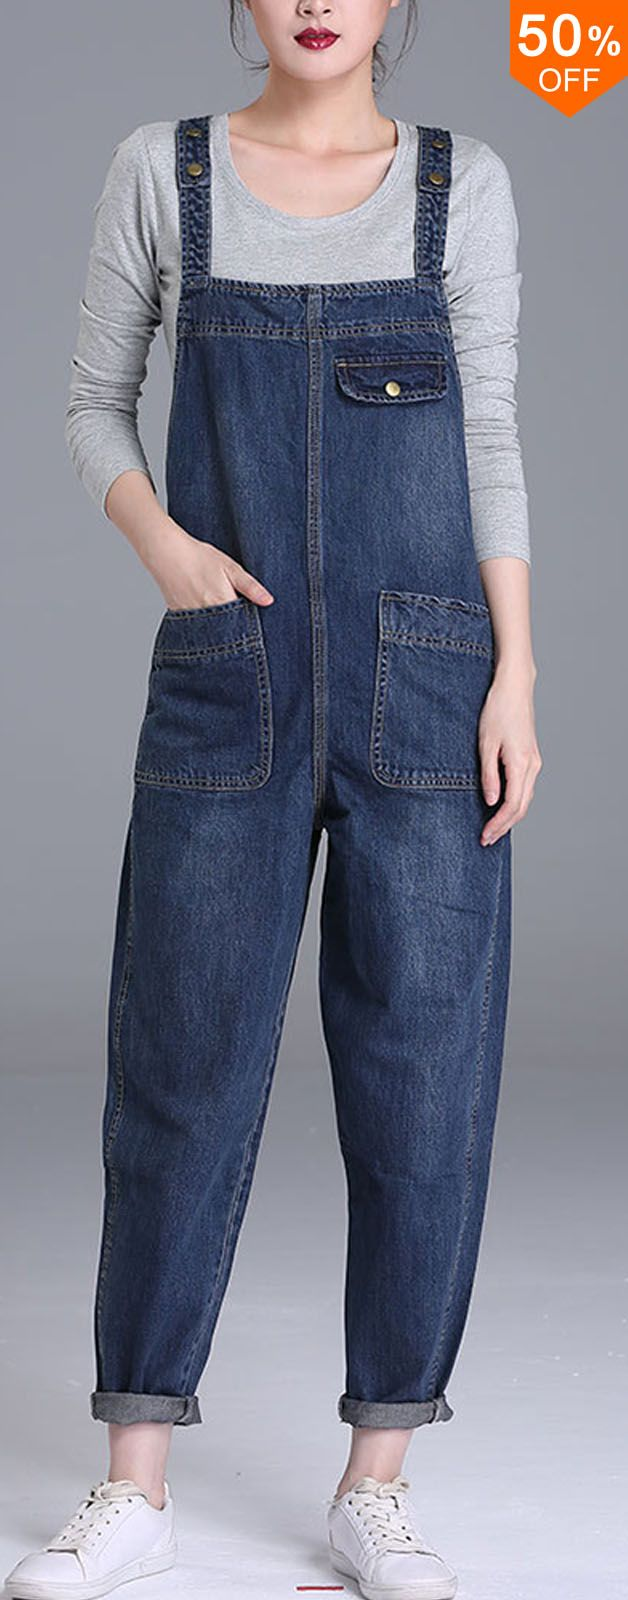 50%OFF&Free shipping. S-6XL Casual Women Denim Pockets Playsuits 2